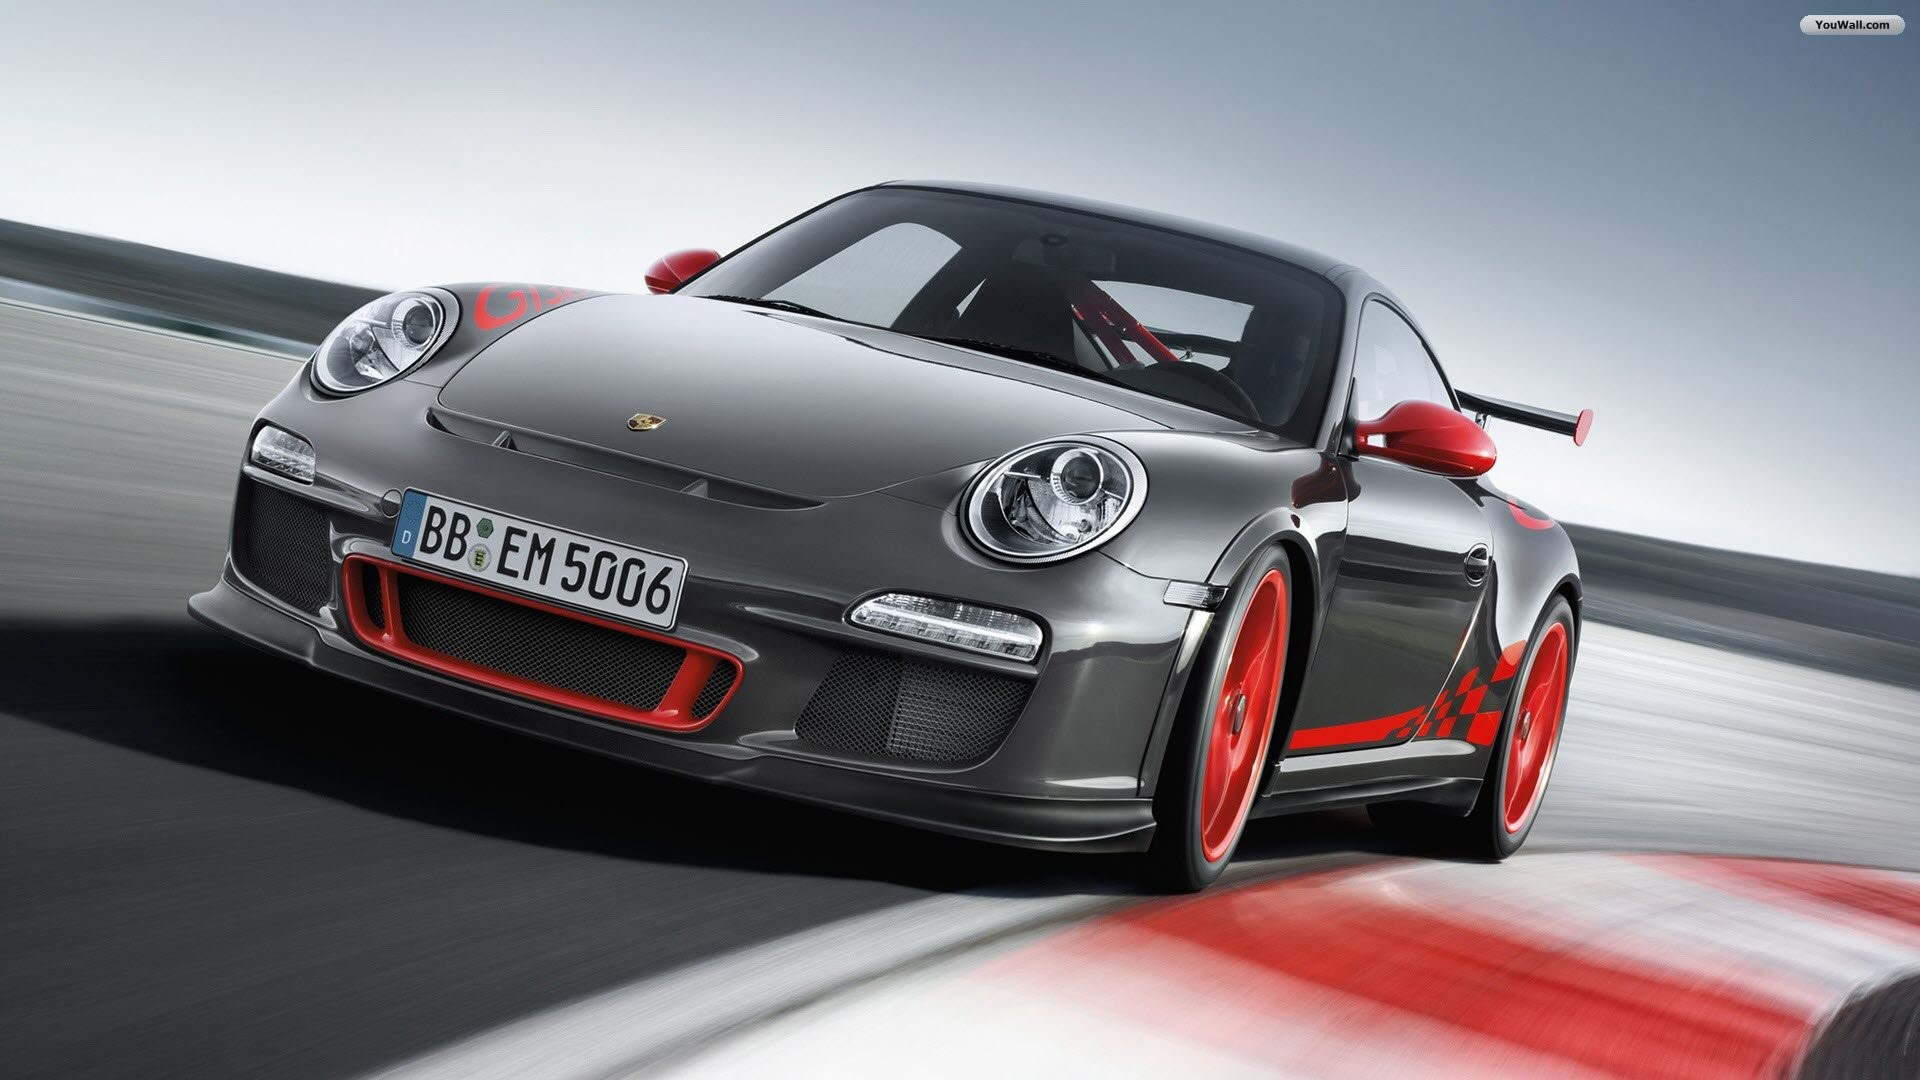 1920x1080 Porsche 911 GT3 RS Wallpaper